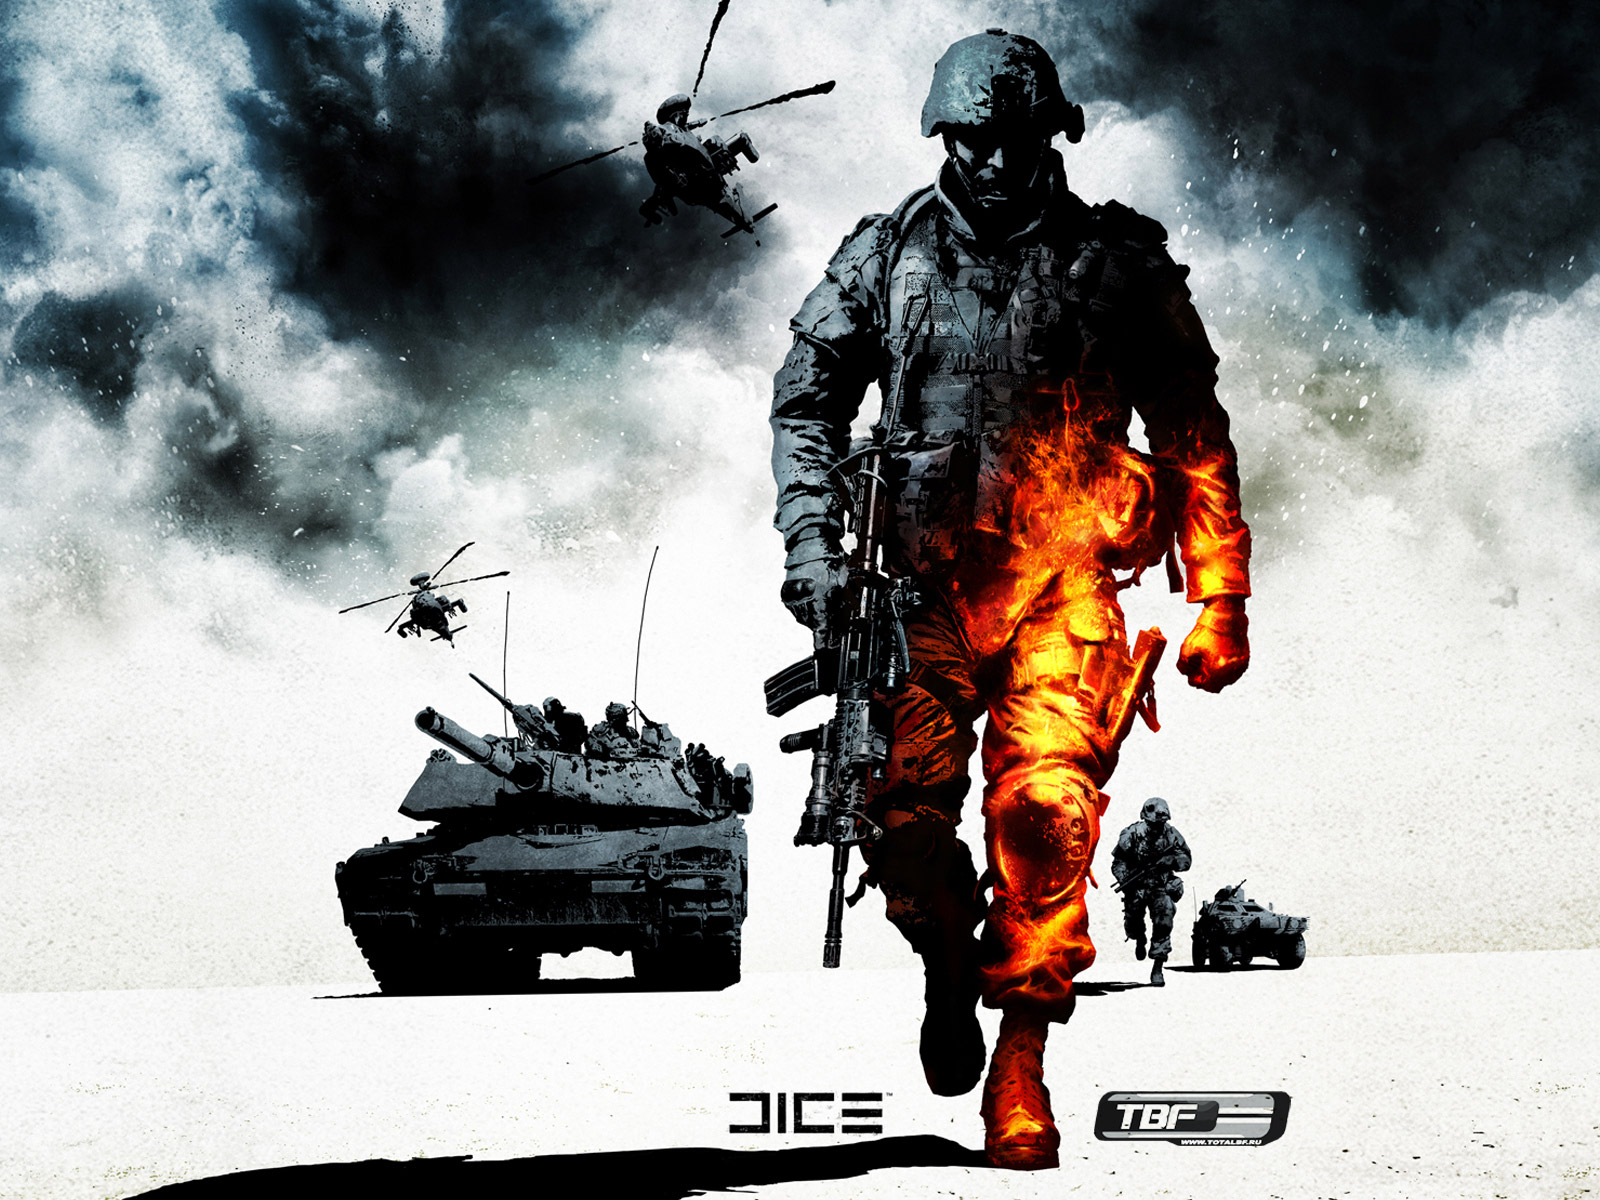 Battlefield Bad Company 2 405.42 Kb